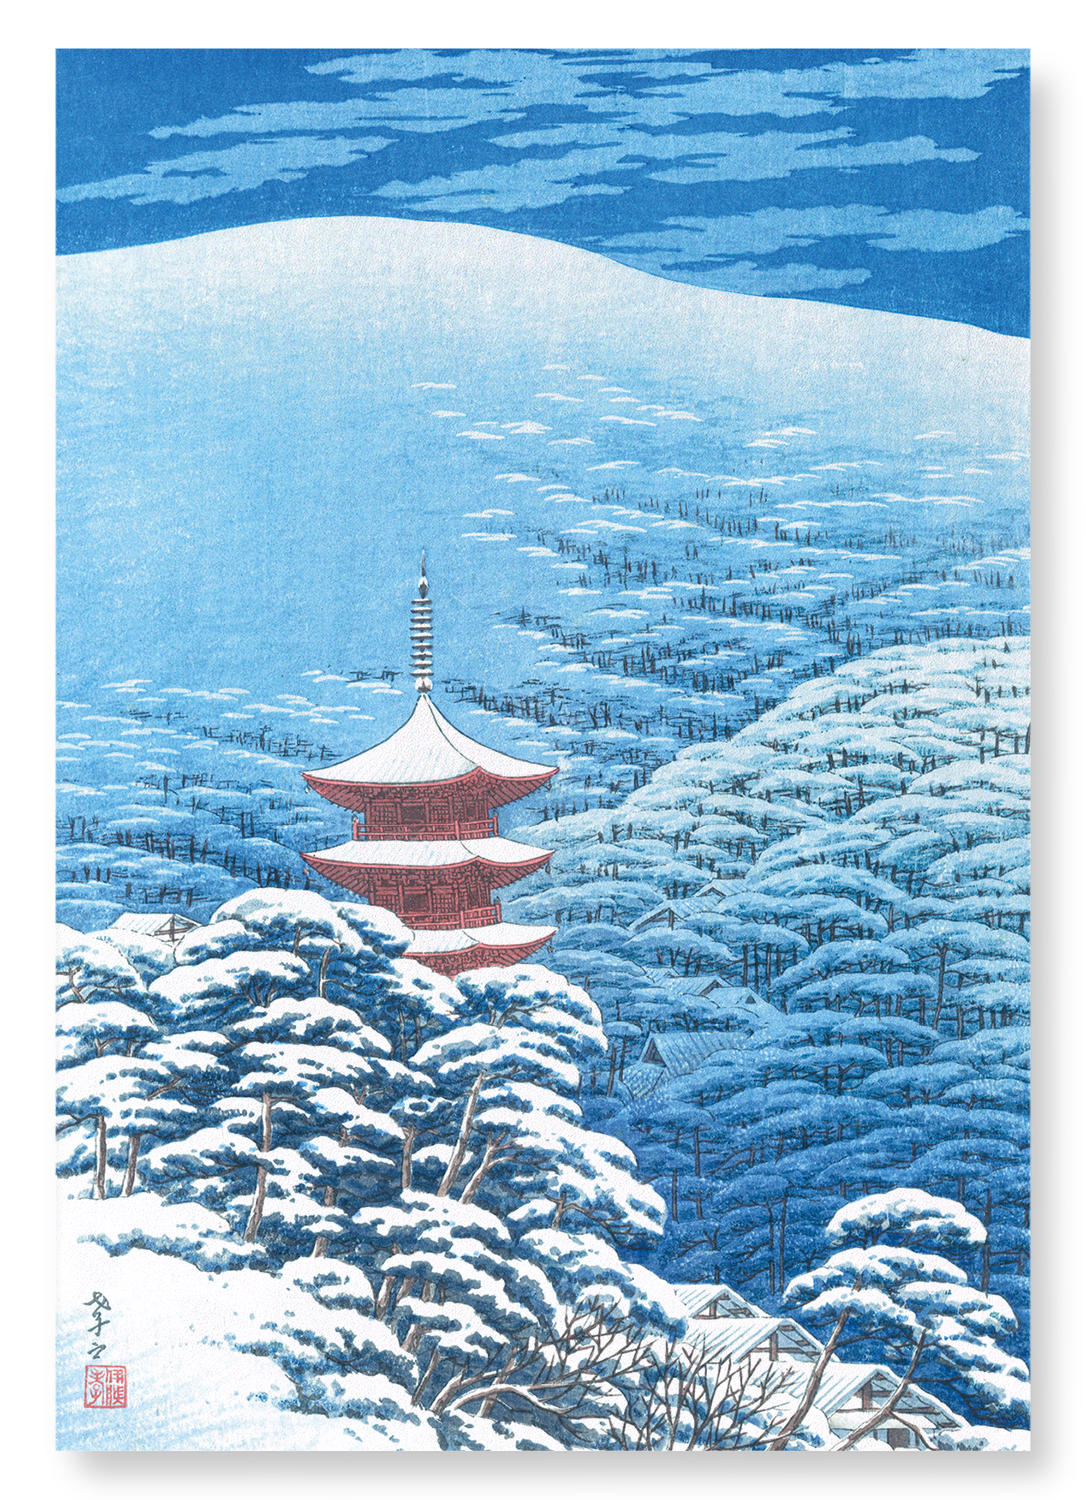 After a snowfall yasaka shrine: 2xPrints